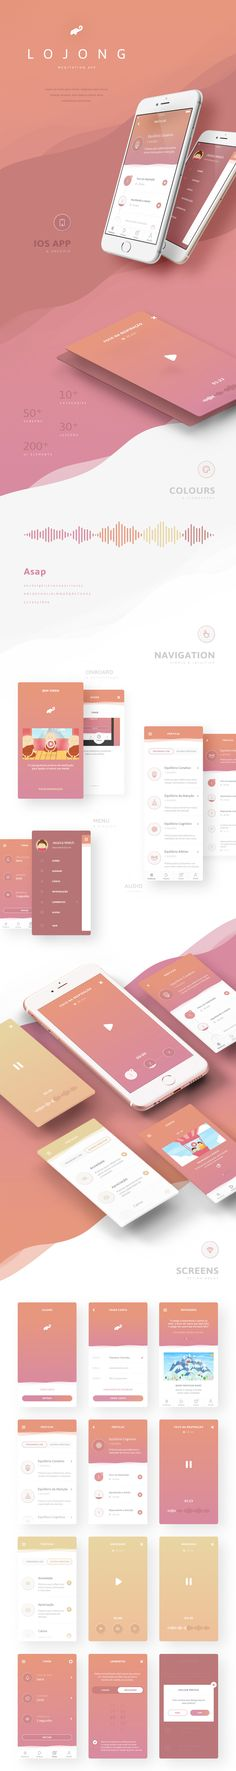 Lojong Meditation App A soft warming colour palette paired with a clean simple UI makes this app user friendly and welcoming. Perfect for a meditation app. Meditation Apps, Meditation Practices, Web Design Mobile, App Ui Design, Gui Interface, Interface Design, Website Design, Ui Design Inspiration, Application Design